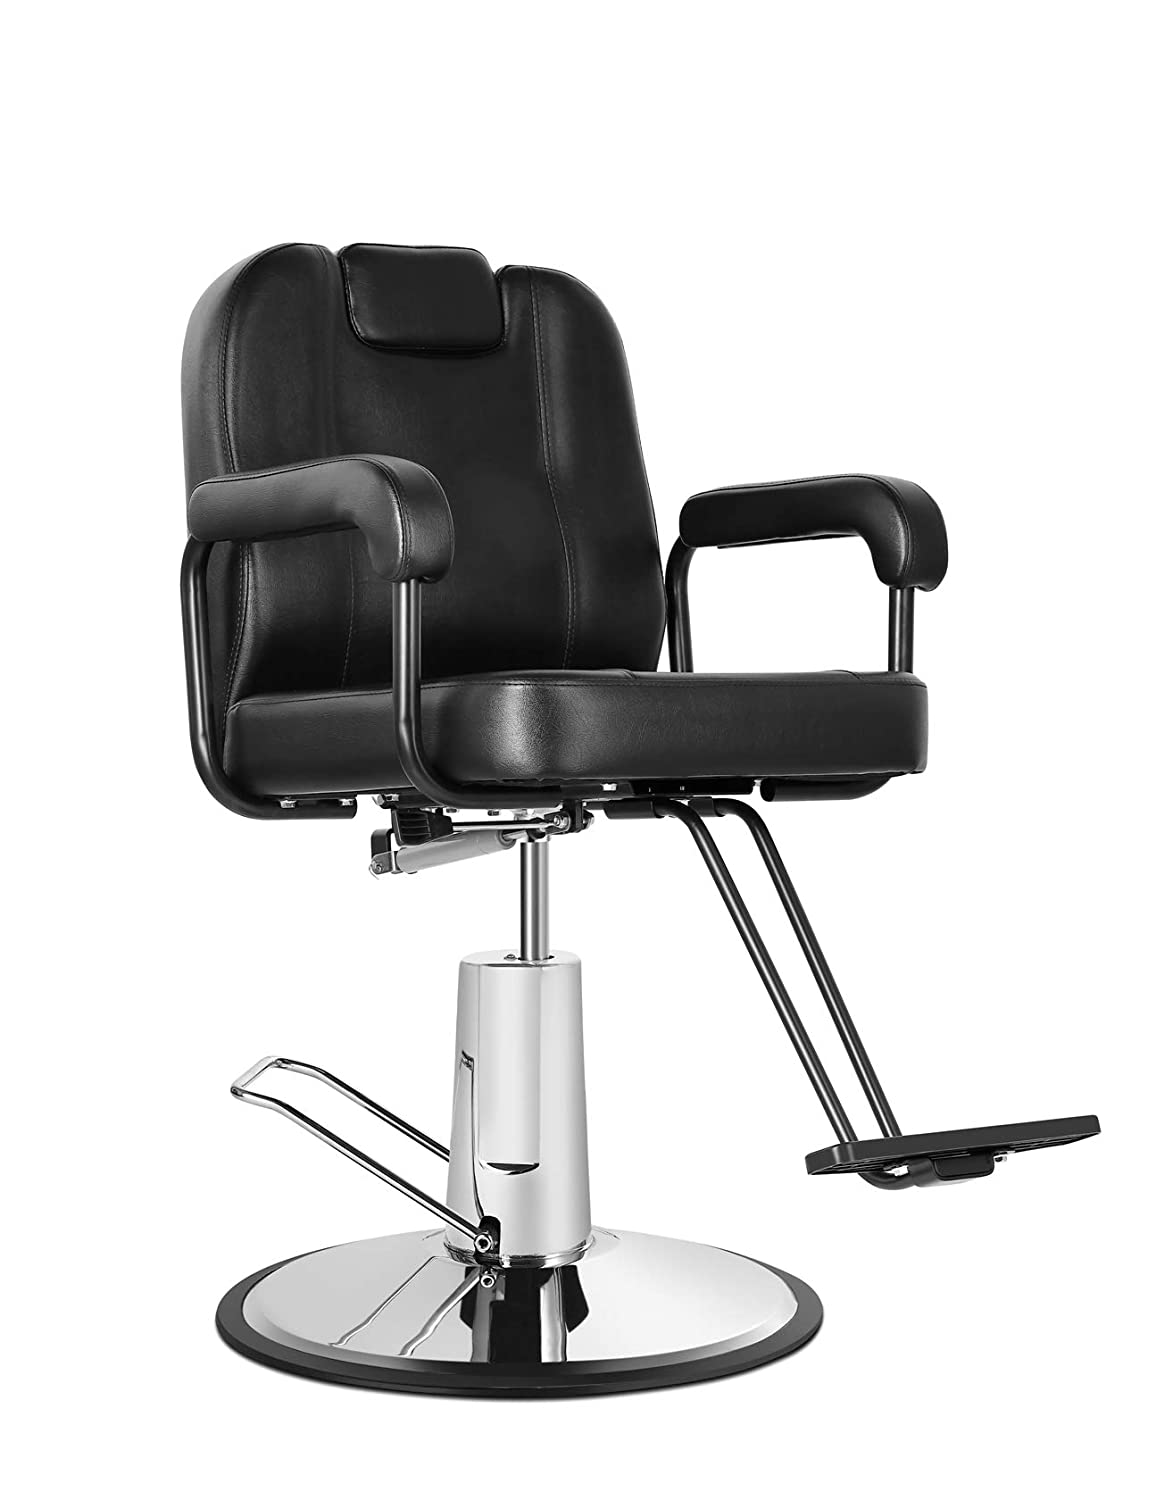 Eastmagic Hydraulic Reclining Salon Chair Barber Chair for Hair Stylist with Movable Headrest Black Beauty Salon Equipment: Kitchen & Dining